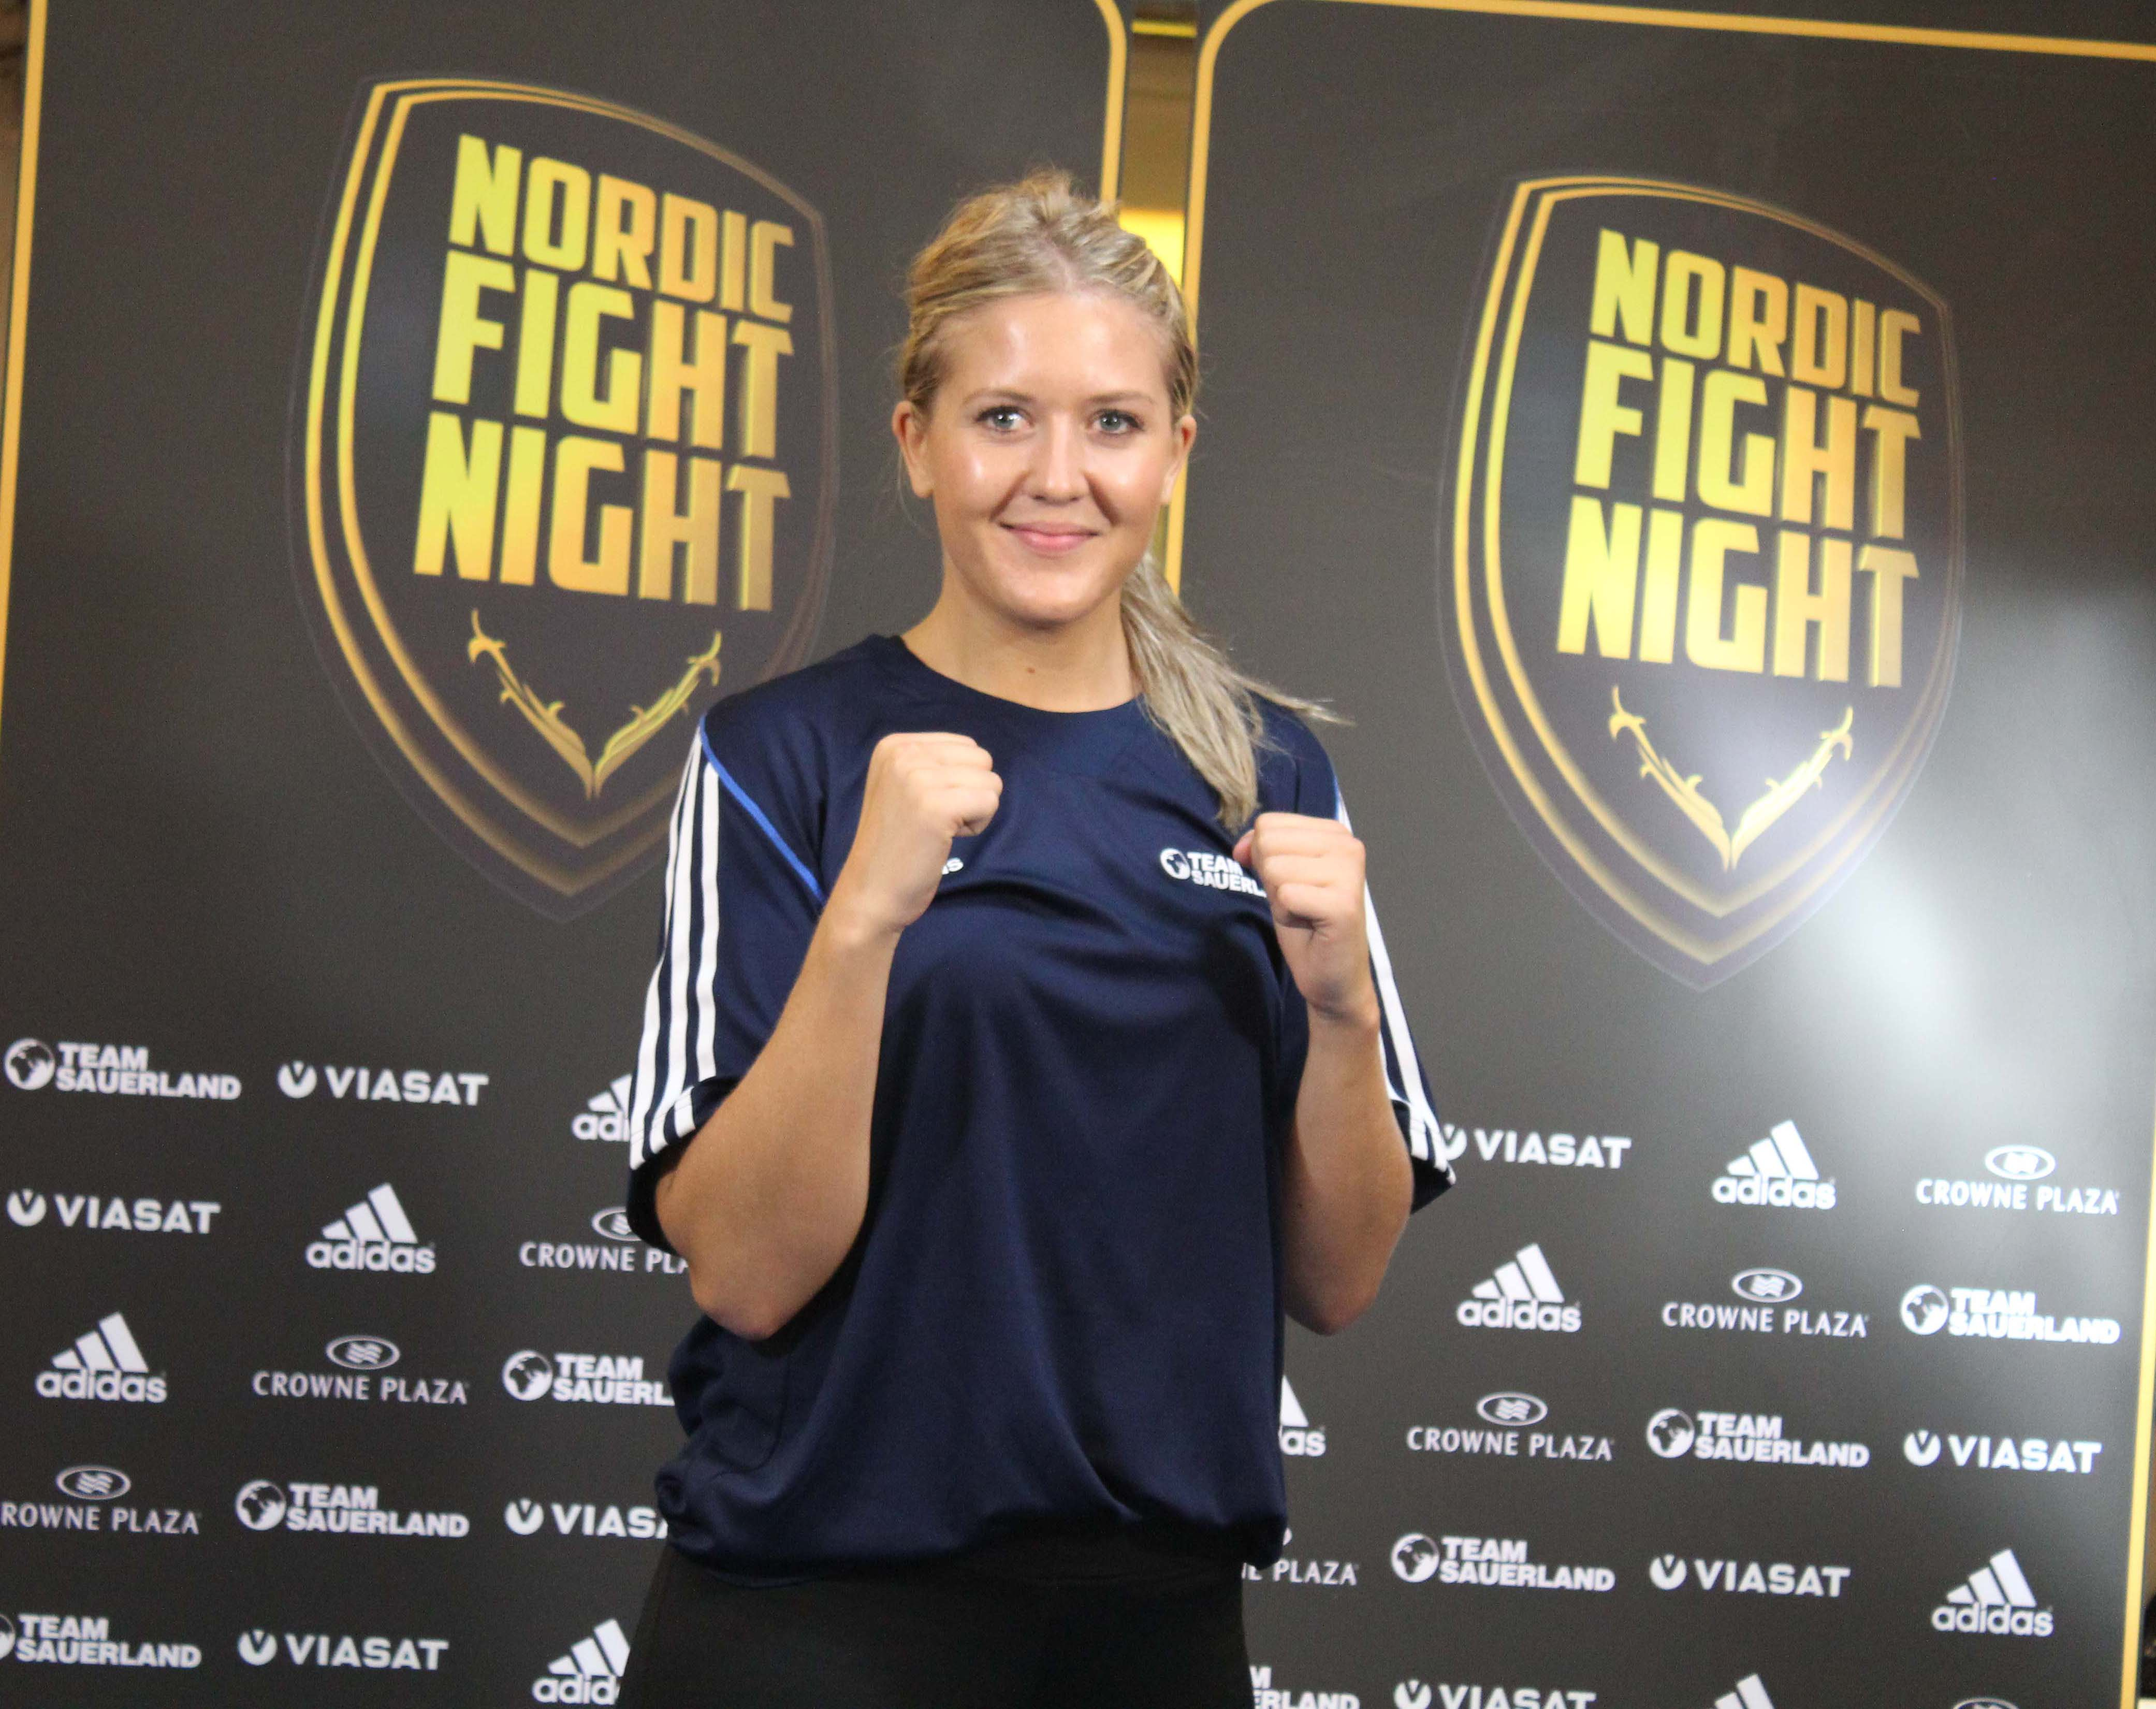 nordic fight night 2015 live stream